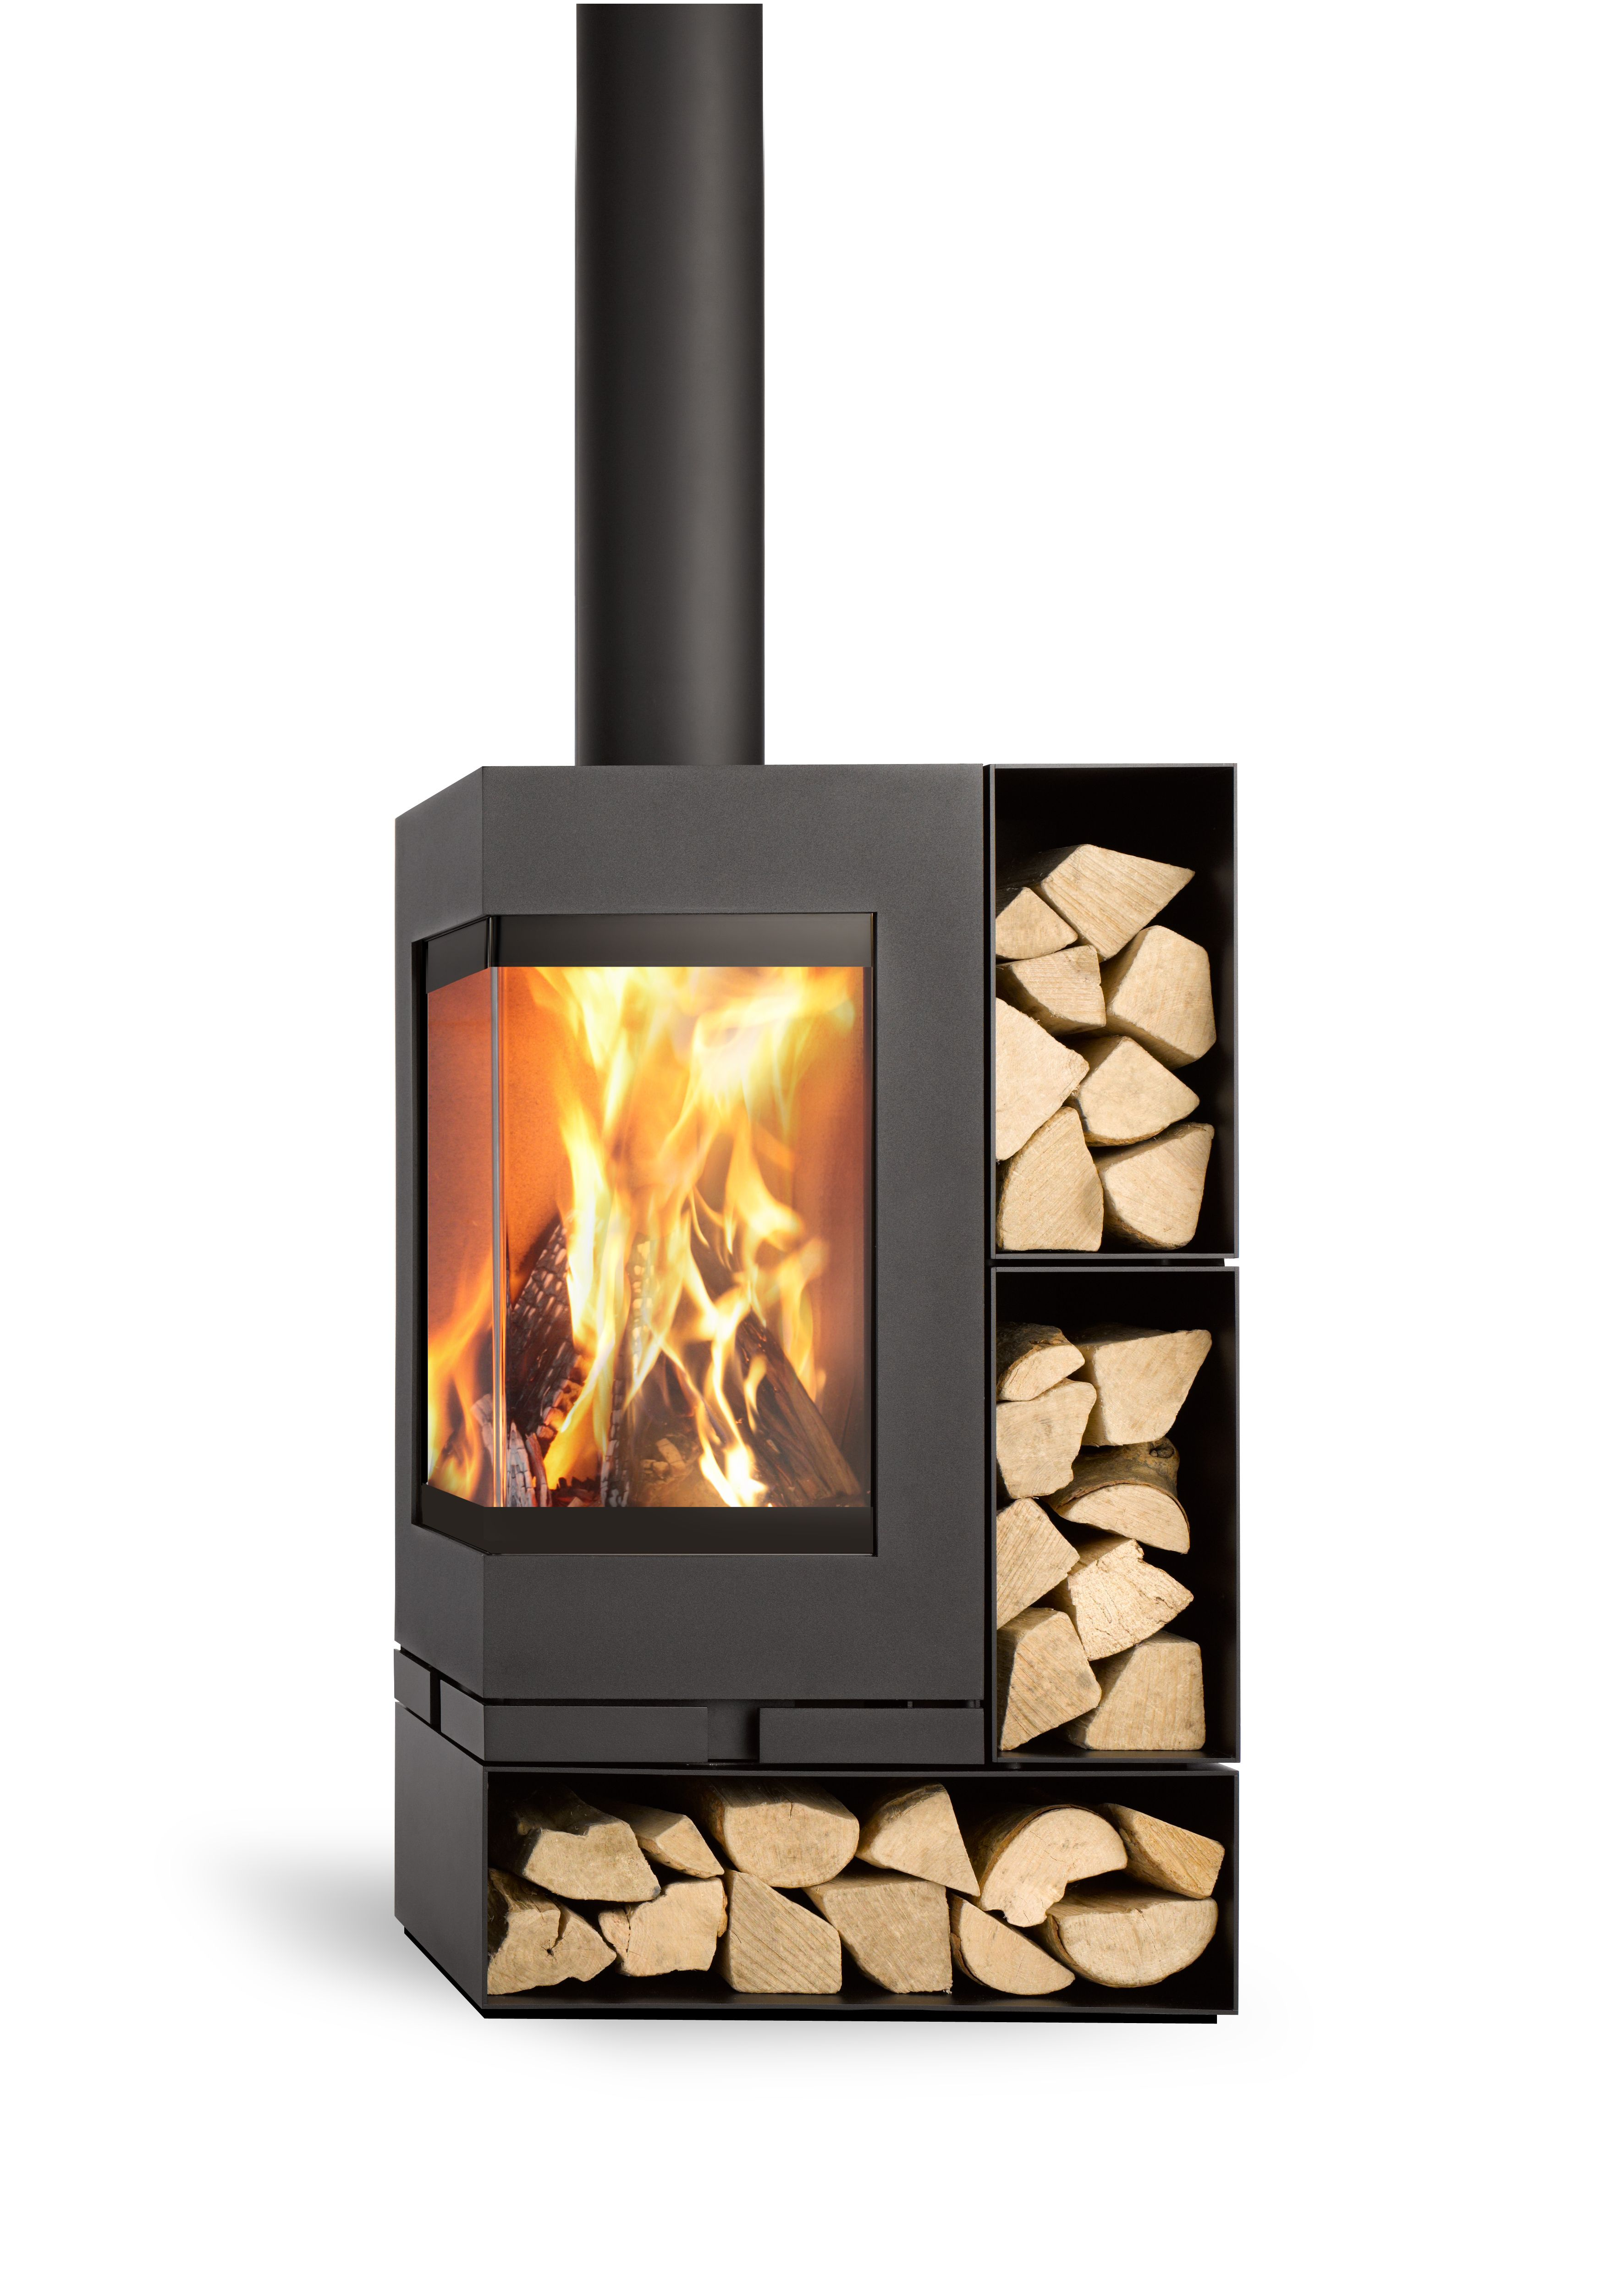 Skatherm Elements freestanding and modular fireplace